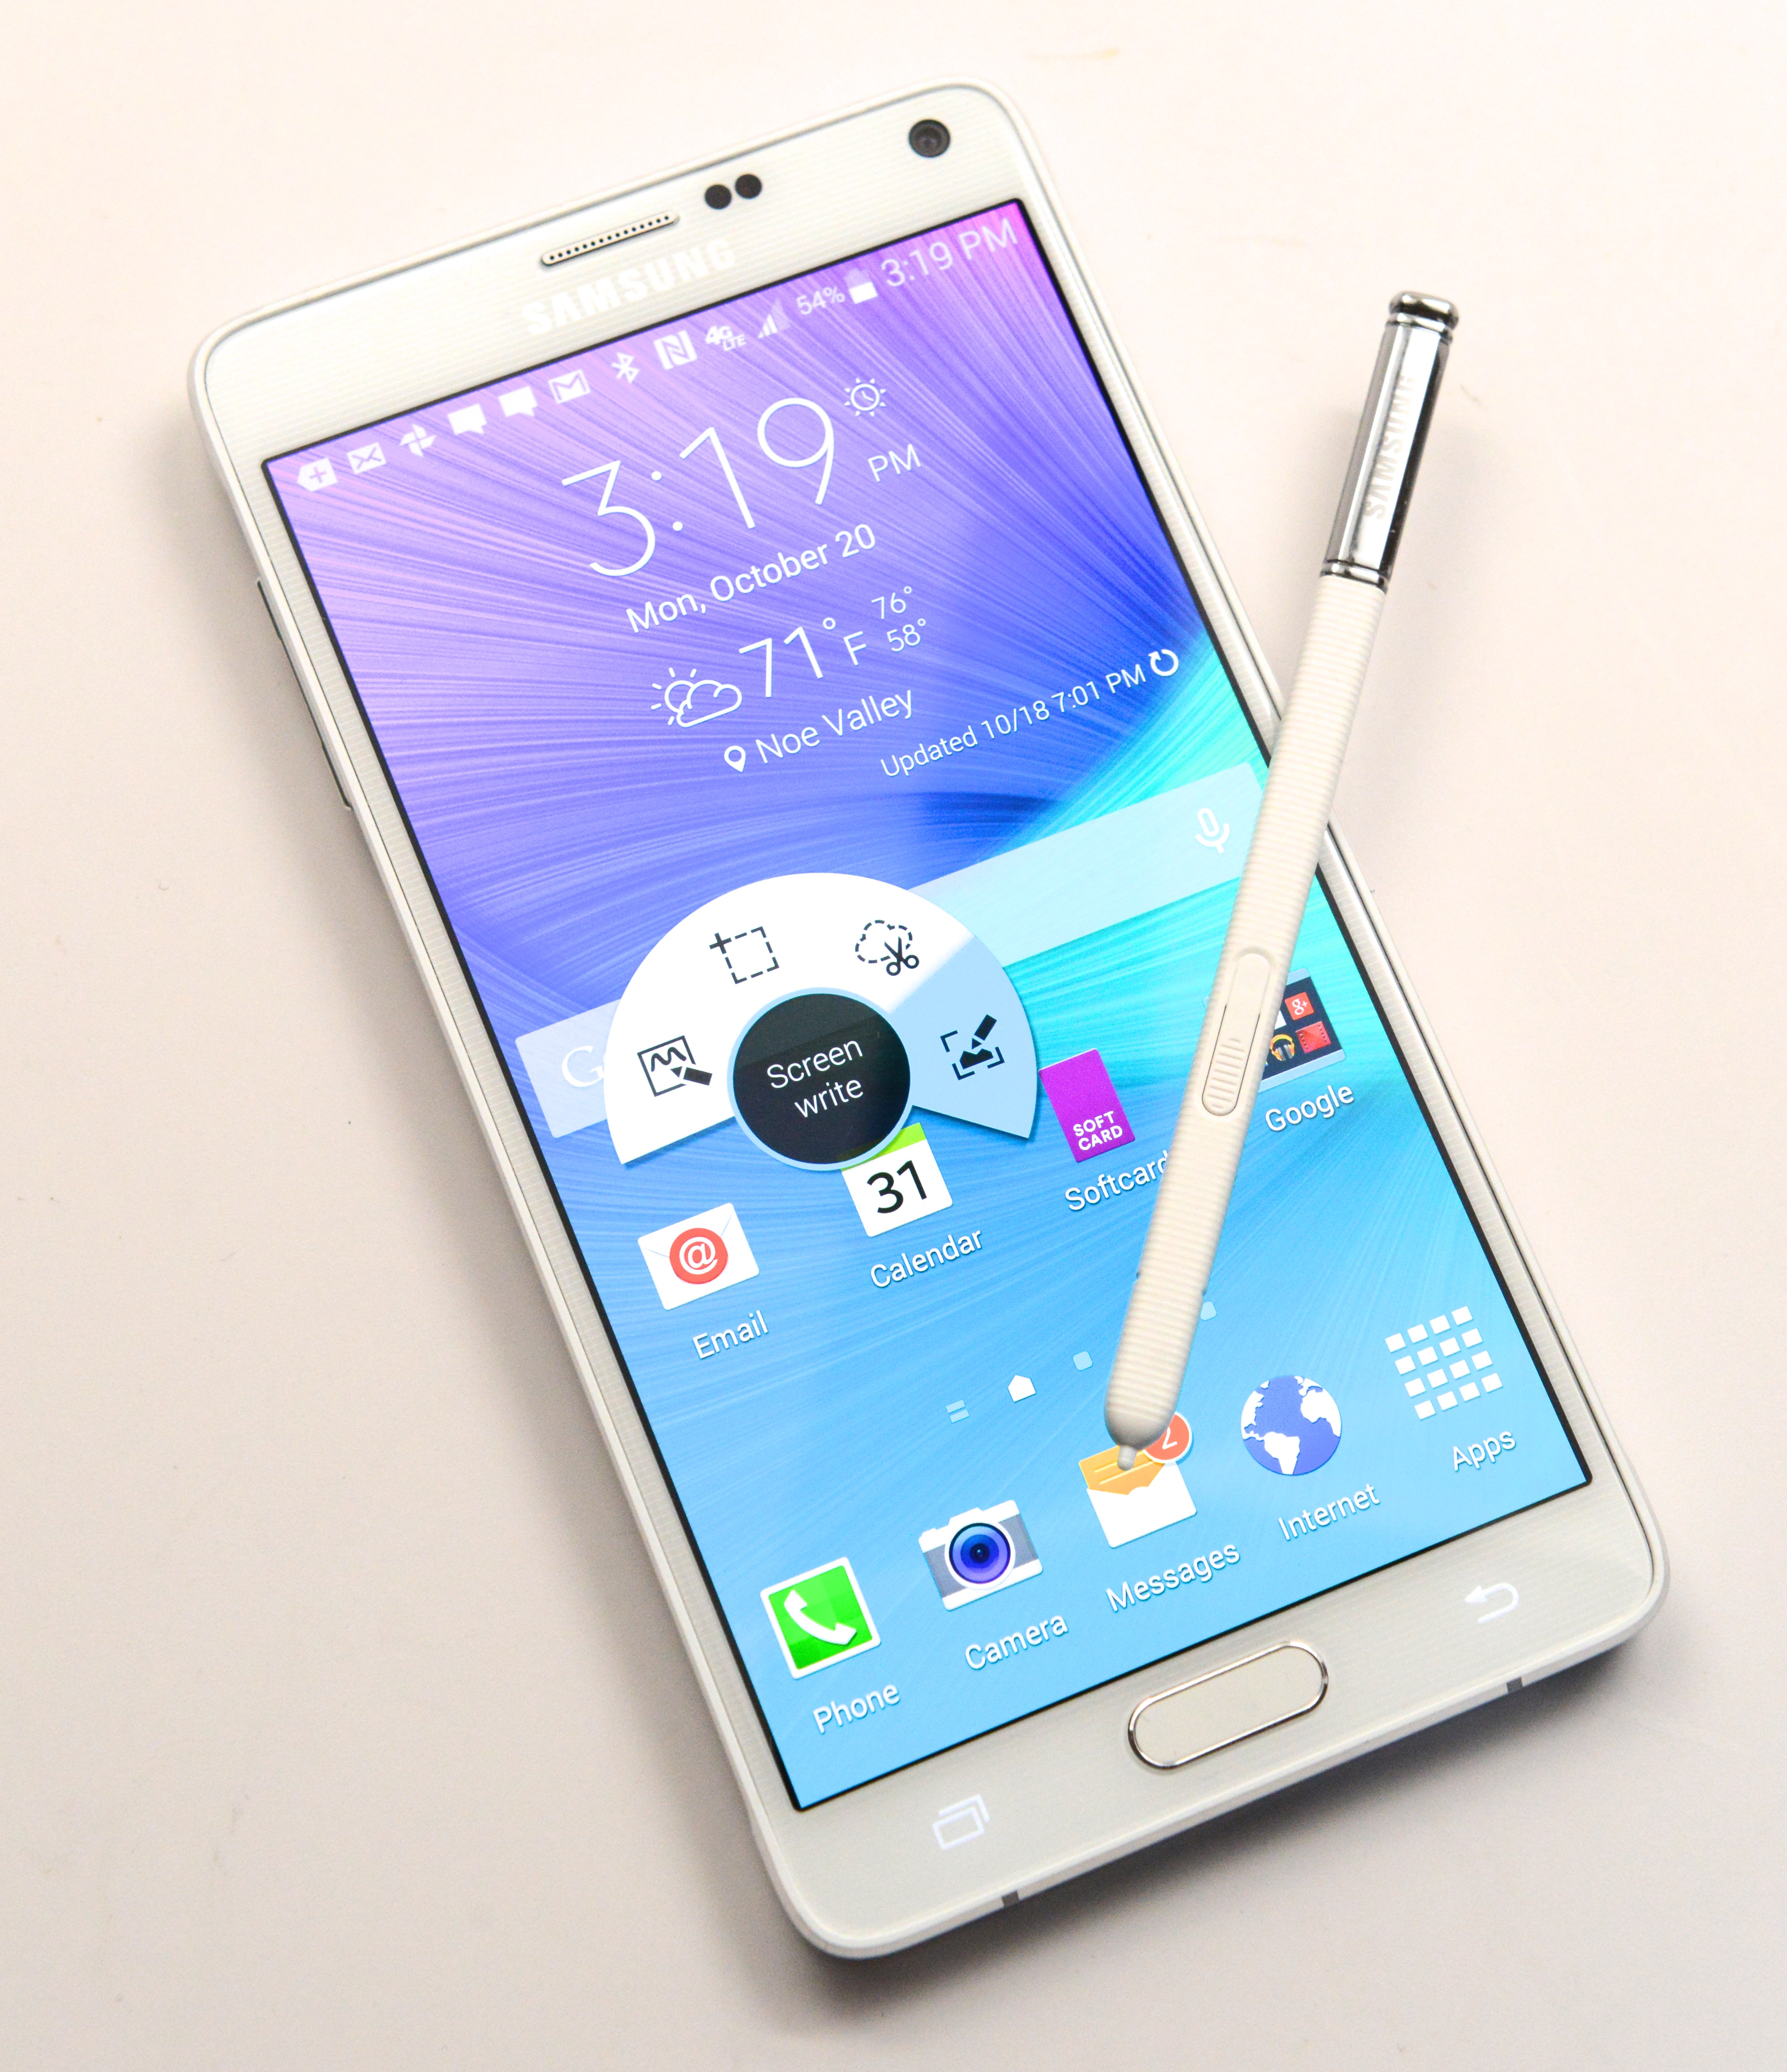 5 Best Android Phones [October, 2014]